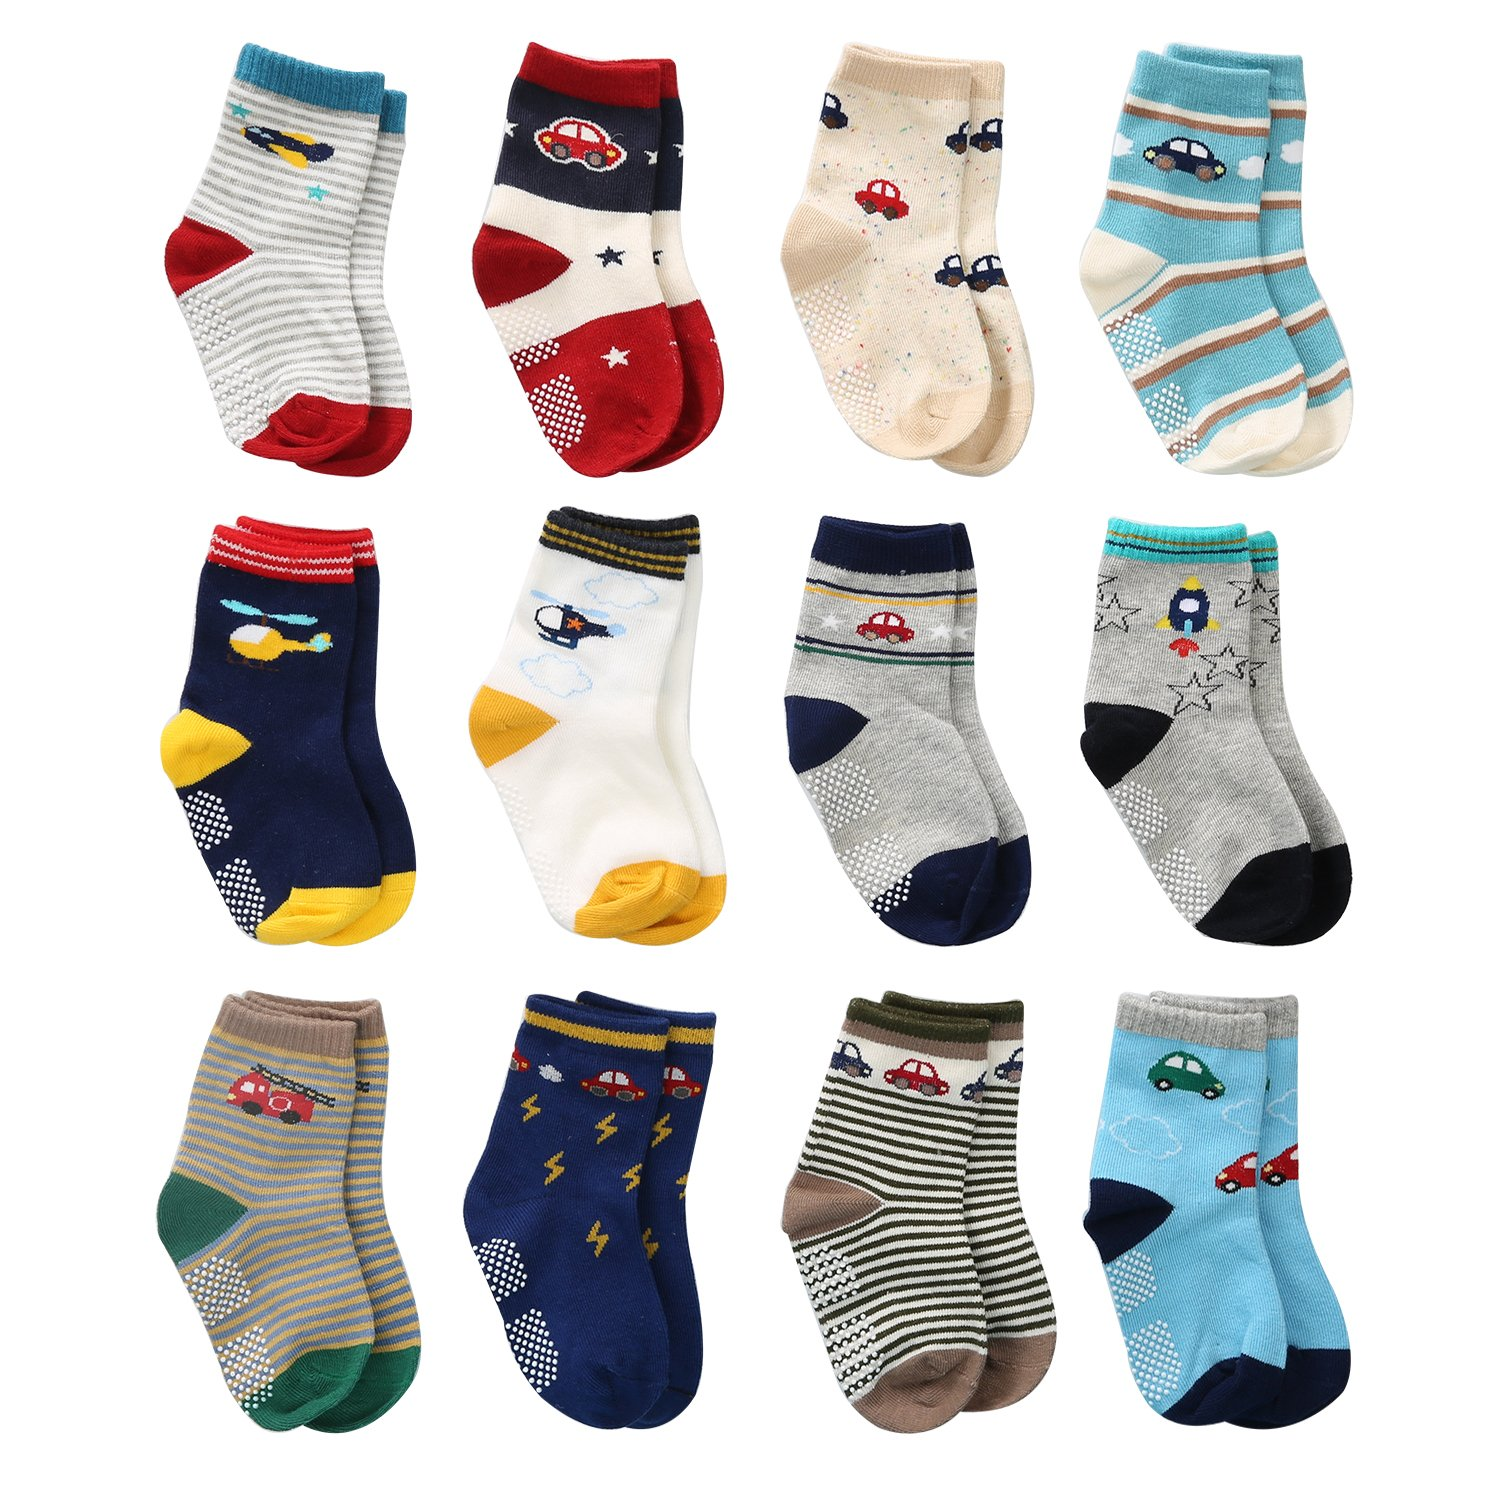 Amazon 12 Pairs Toddler Boy Non Skid Socks Cute Cotton with